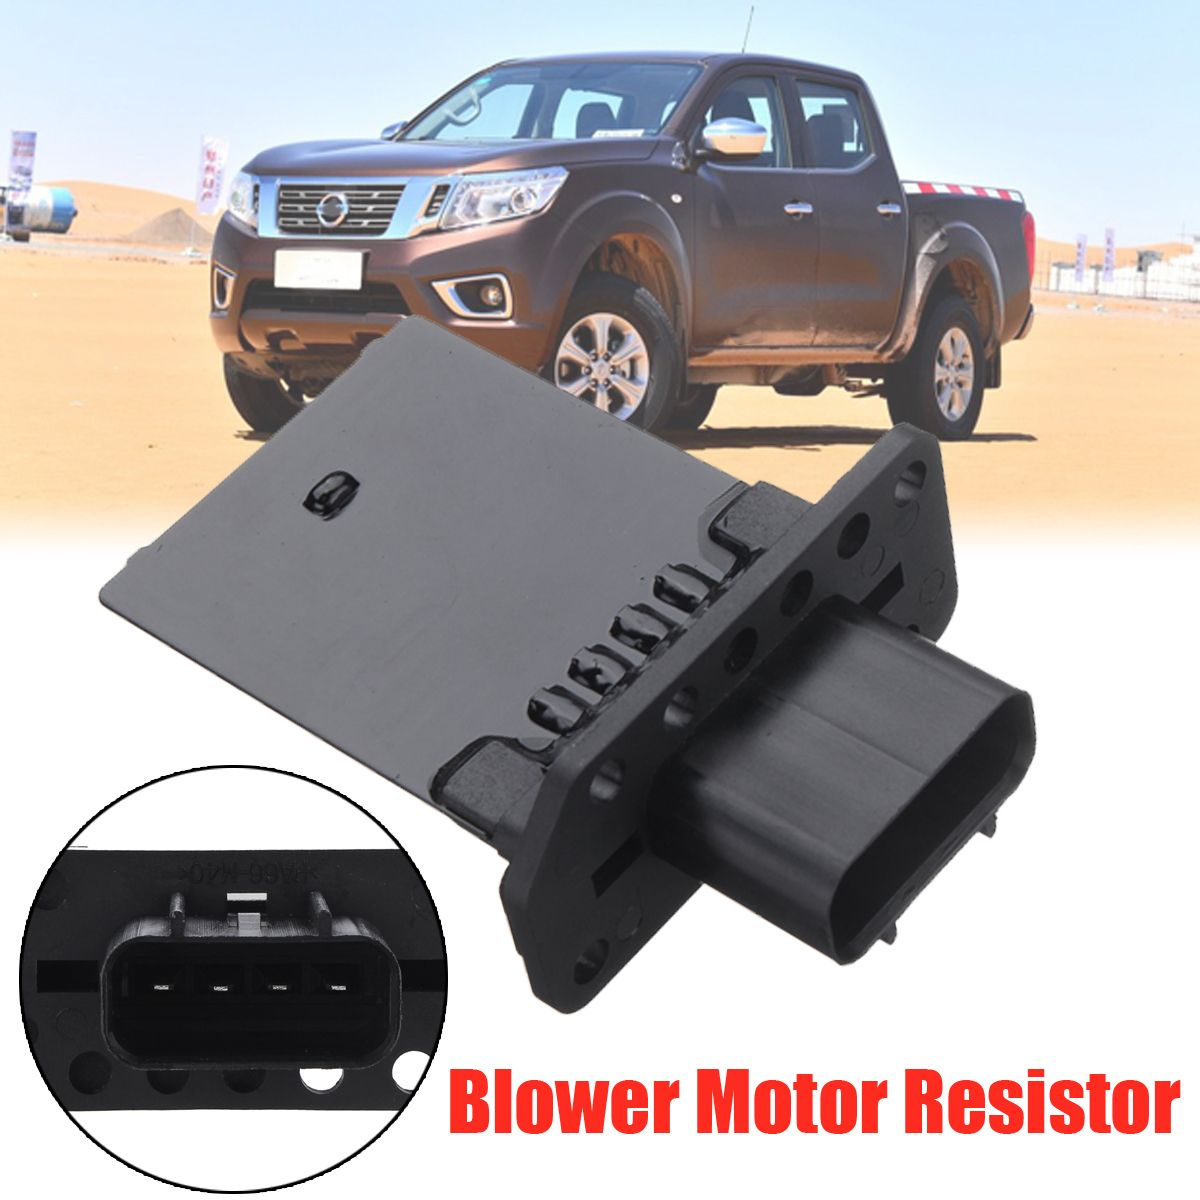 small resolution of car blower motor heater fan resistor for nissan navara d40 pathfinder r51 05 13 sale shoppingdiscounts